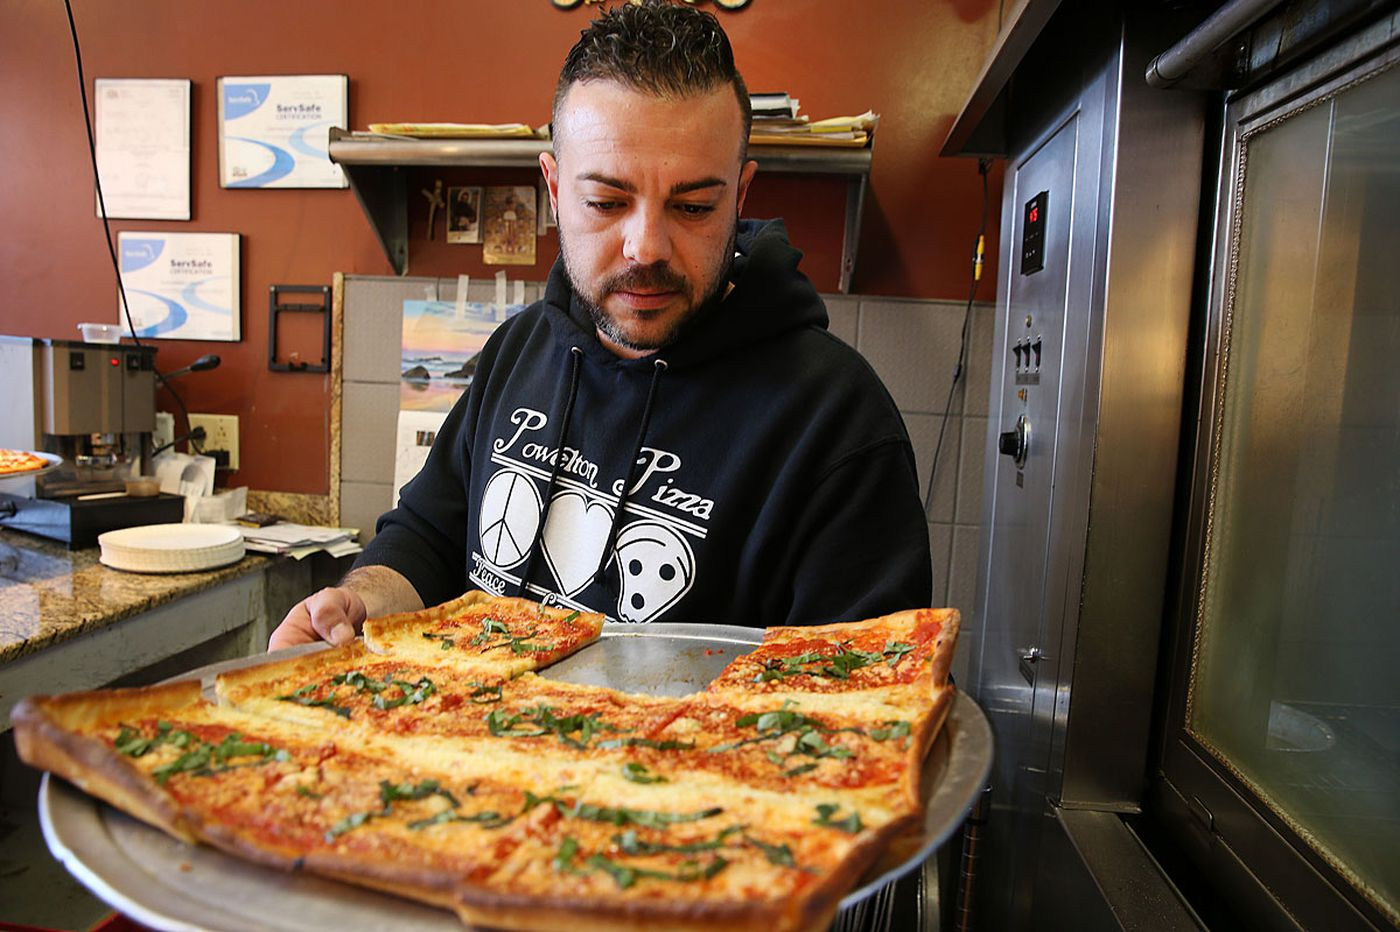 A pizza shop, a horrible crime, and a case of mistaken identity